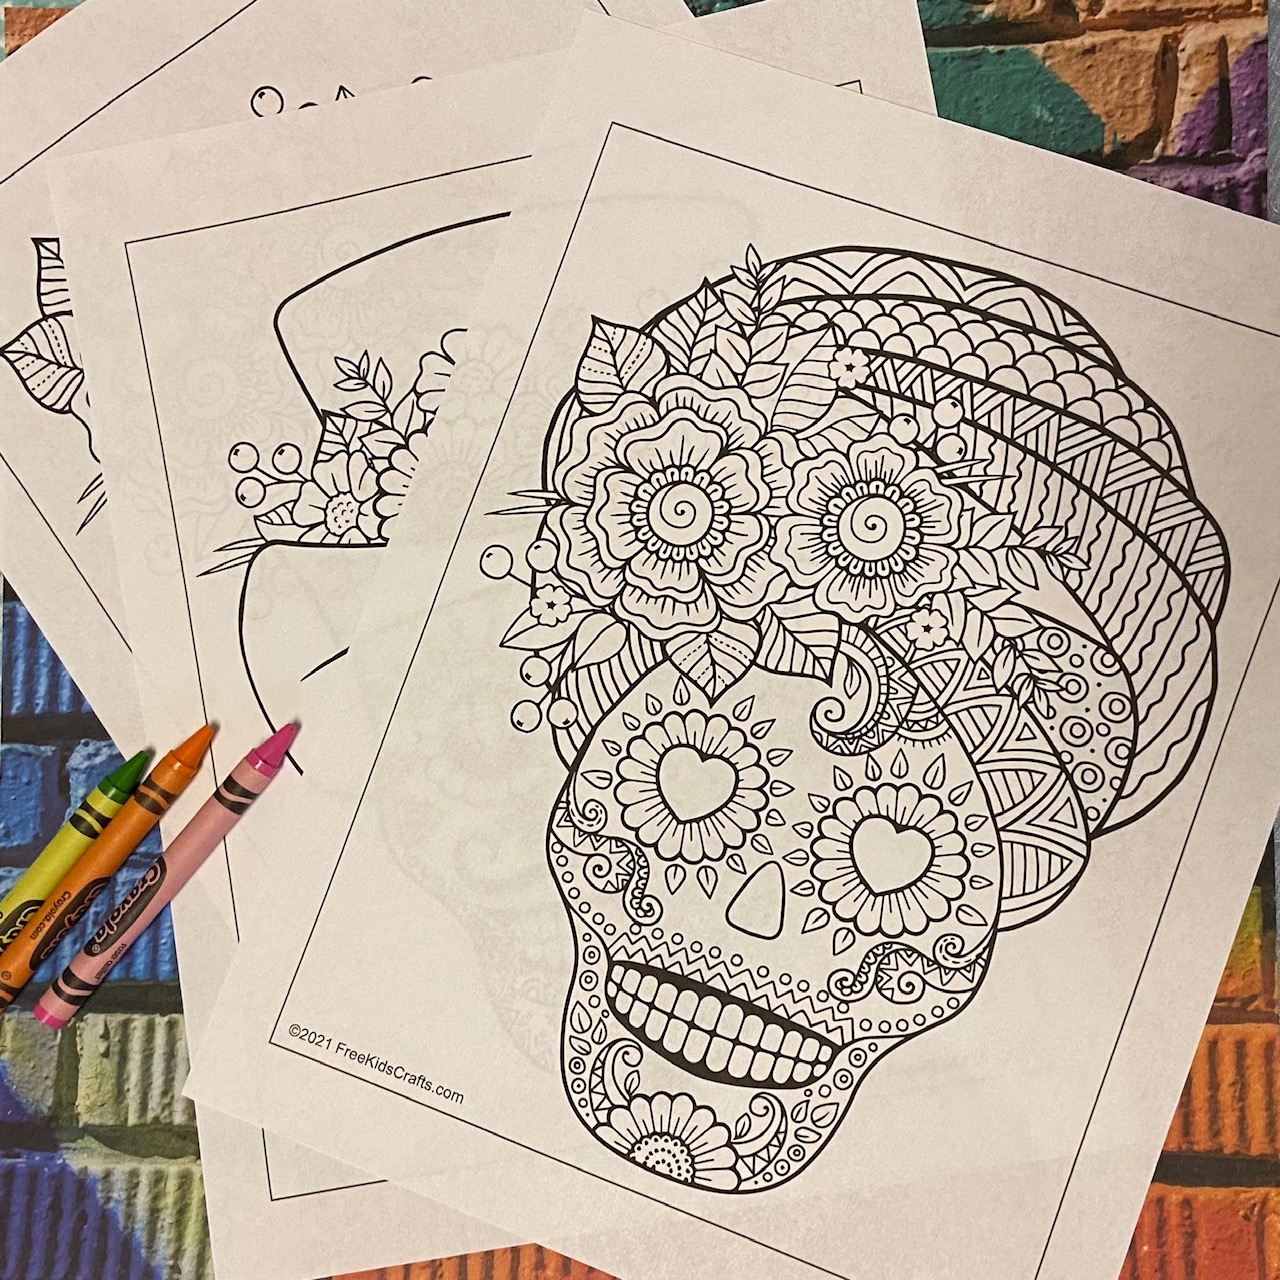 Coloring pages for older children featuring sugar skulls.